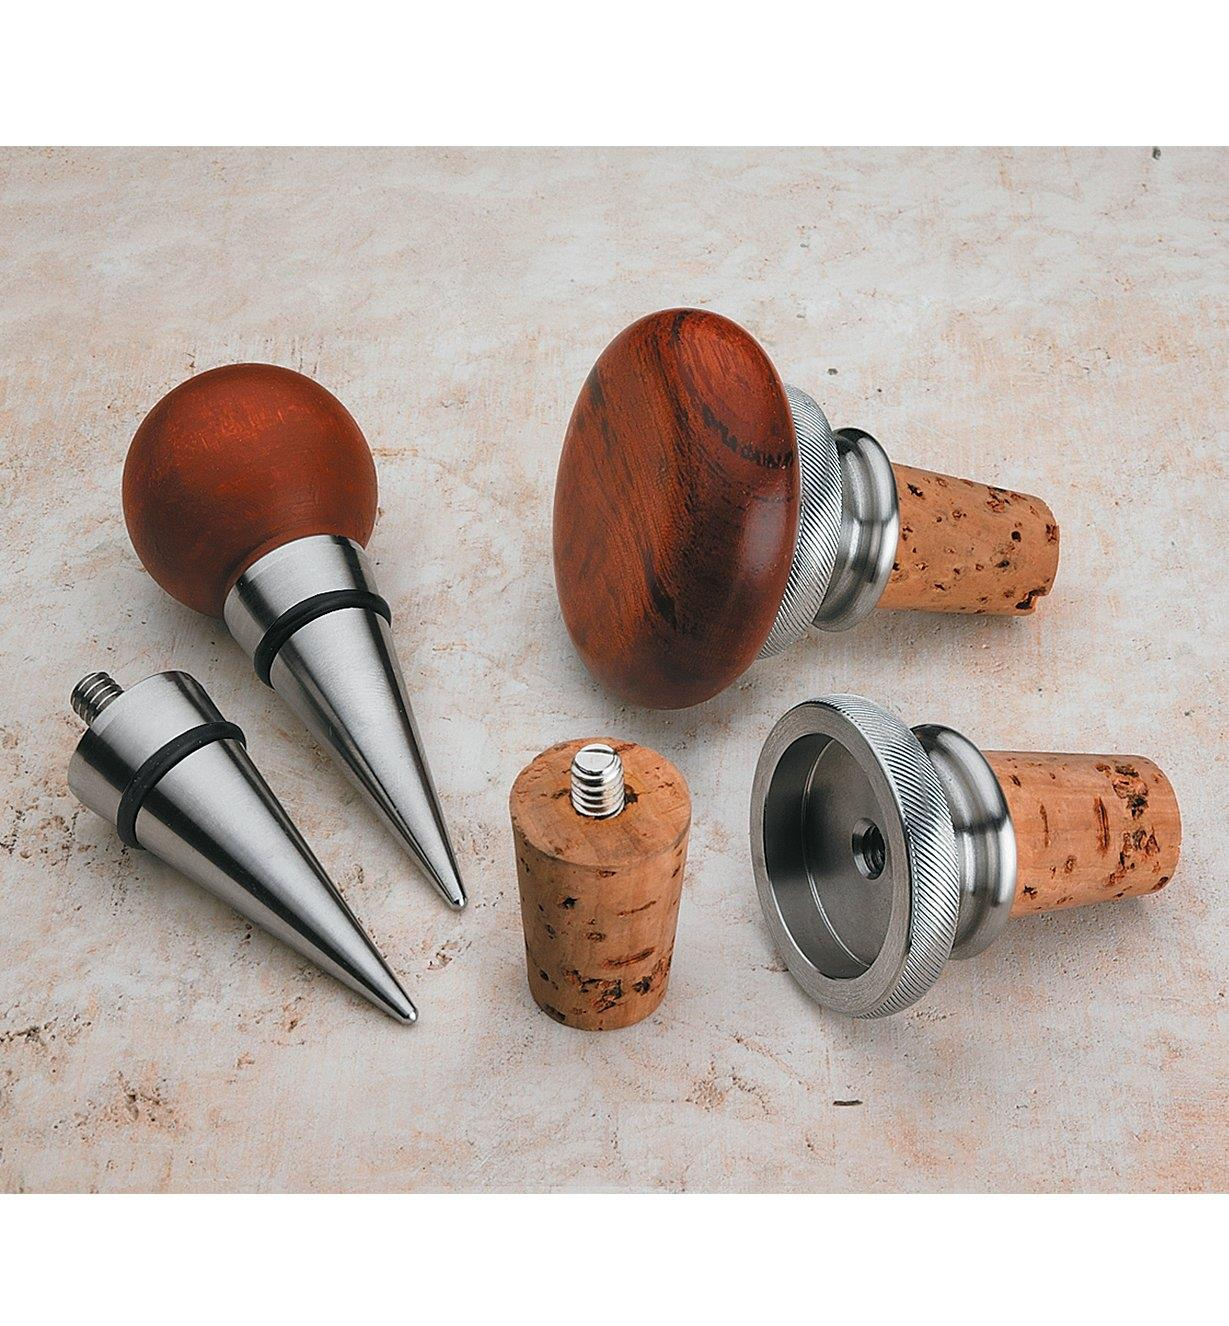 Stainless-Steel Bottle Stopper Components